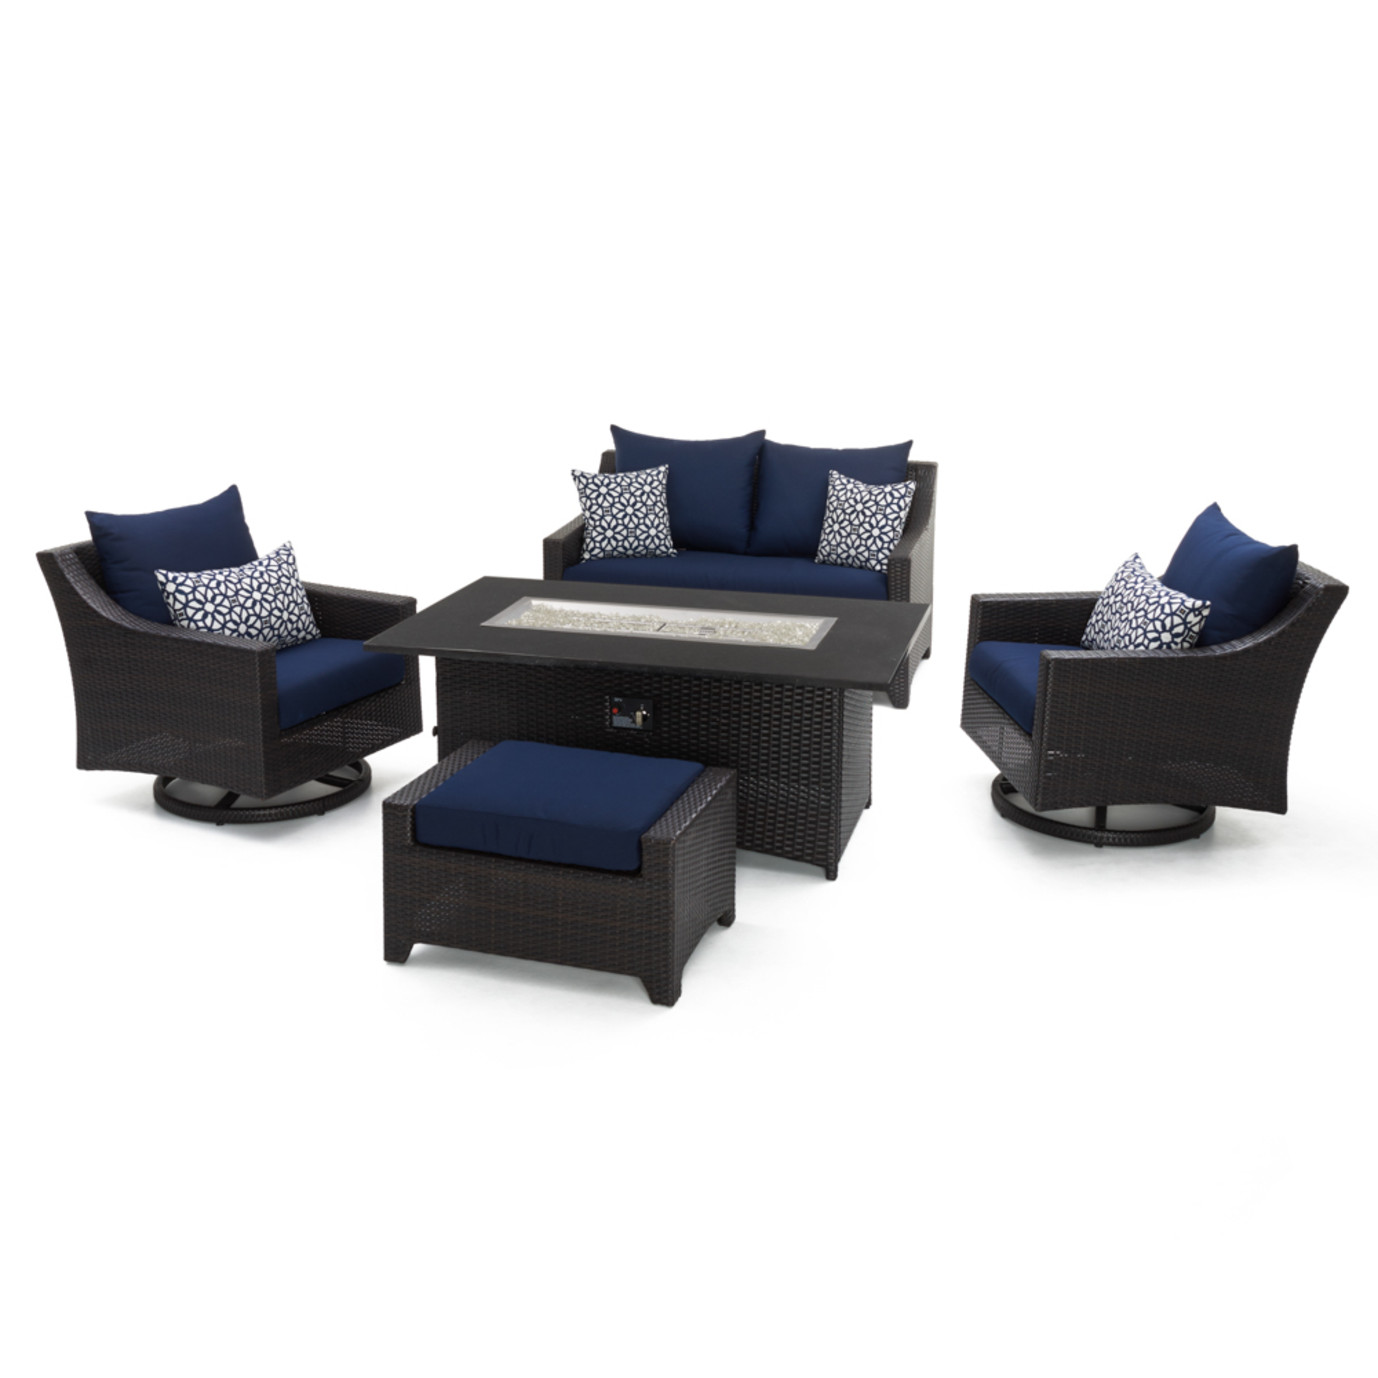 Deco™ 5 Piece Love & Motion Club Fire Set - Navy Blue